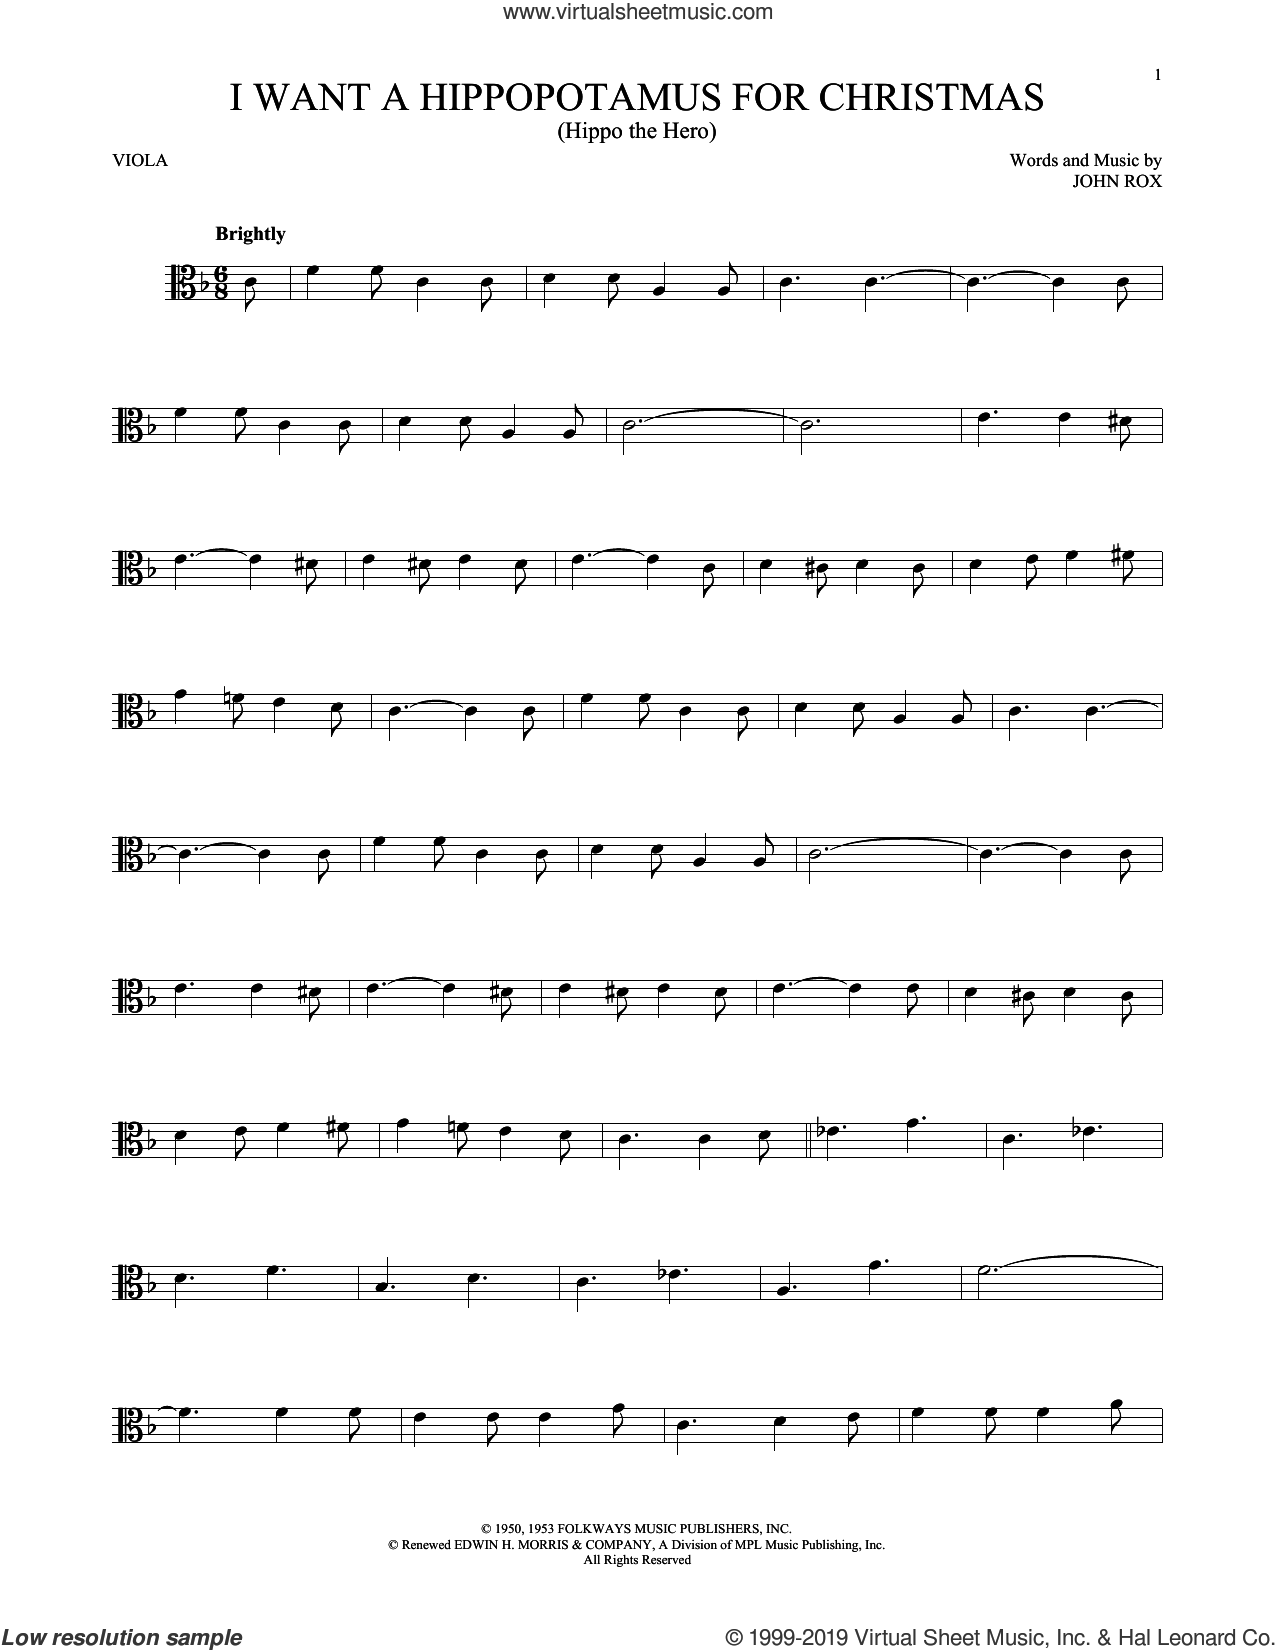 I Want A Hippopotamus For Christmas (Hippo The Hero) sheet music for viola solo by Gayla Peevey and John Rox, intermediate skill level